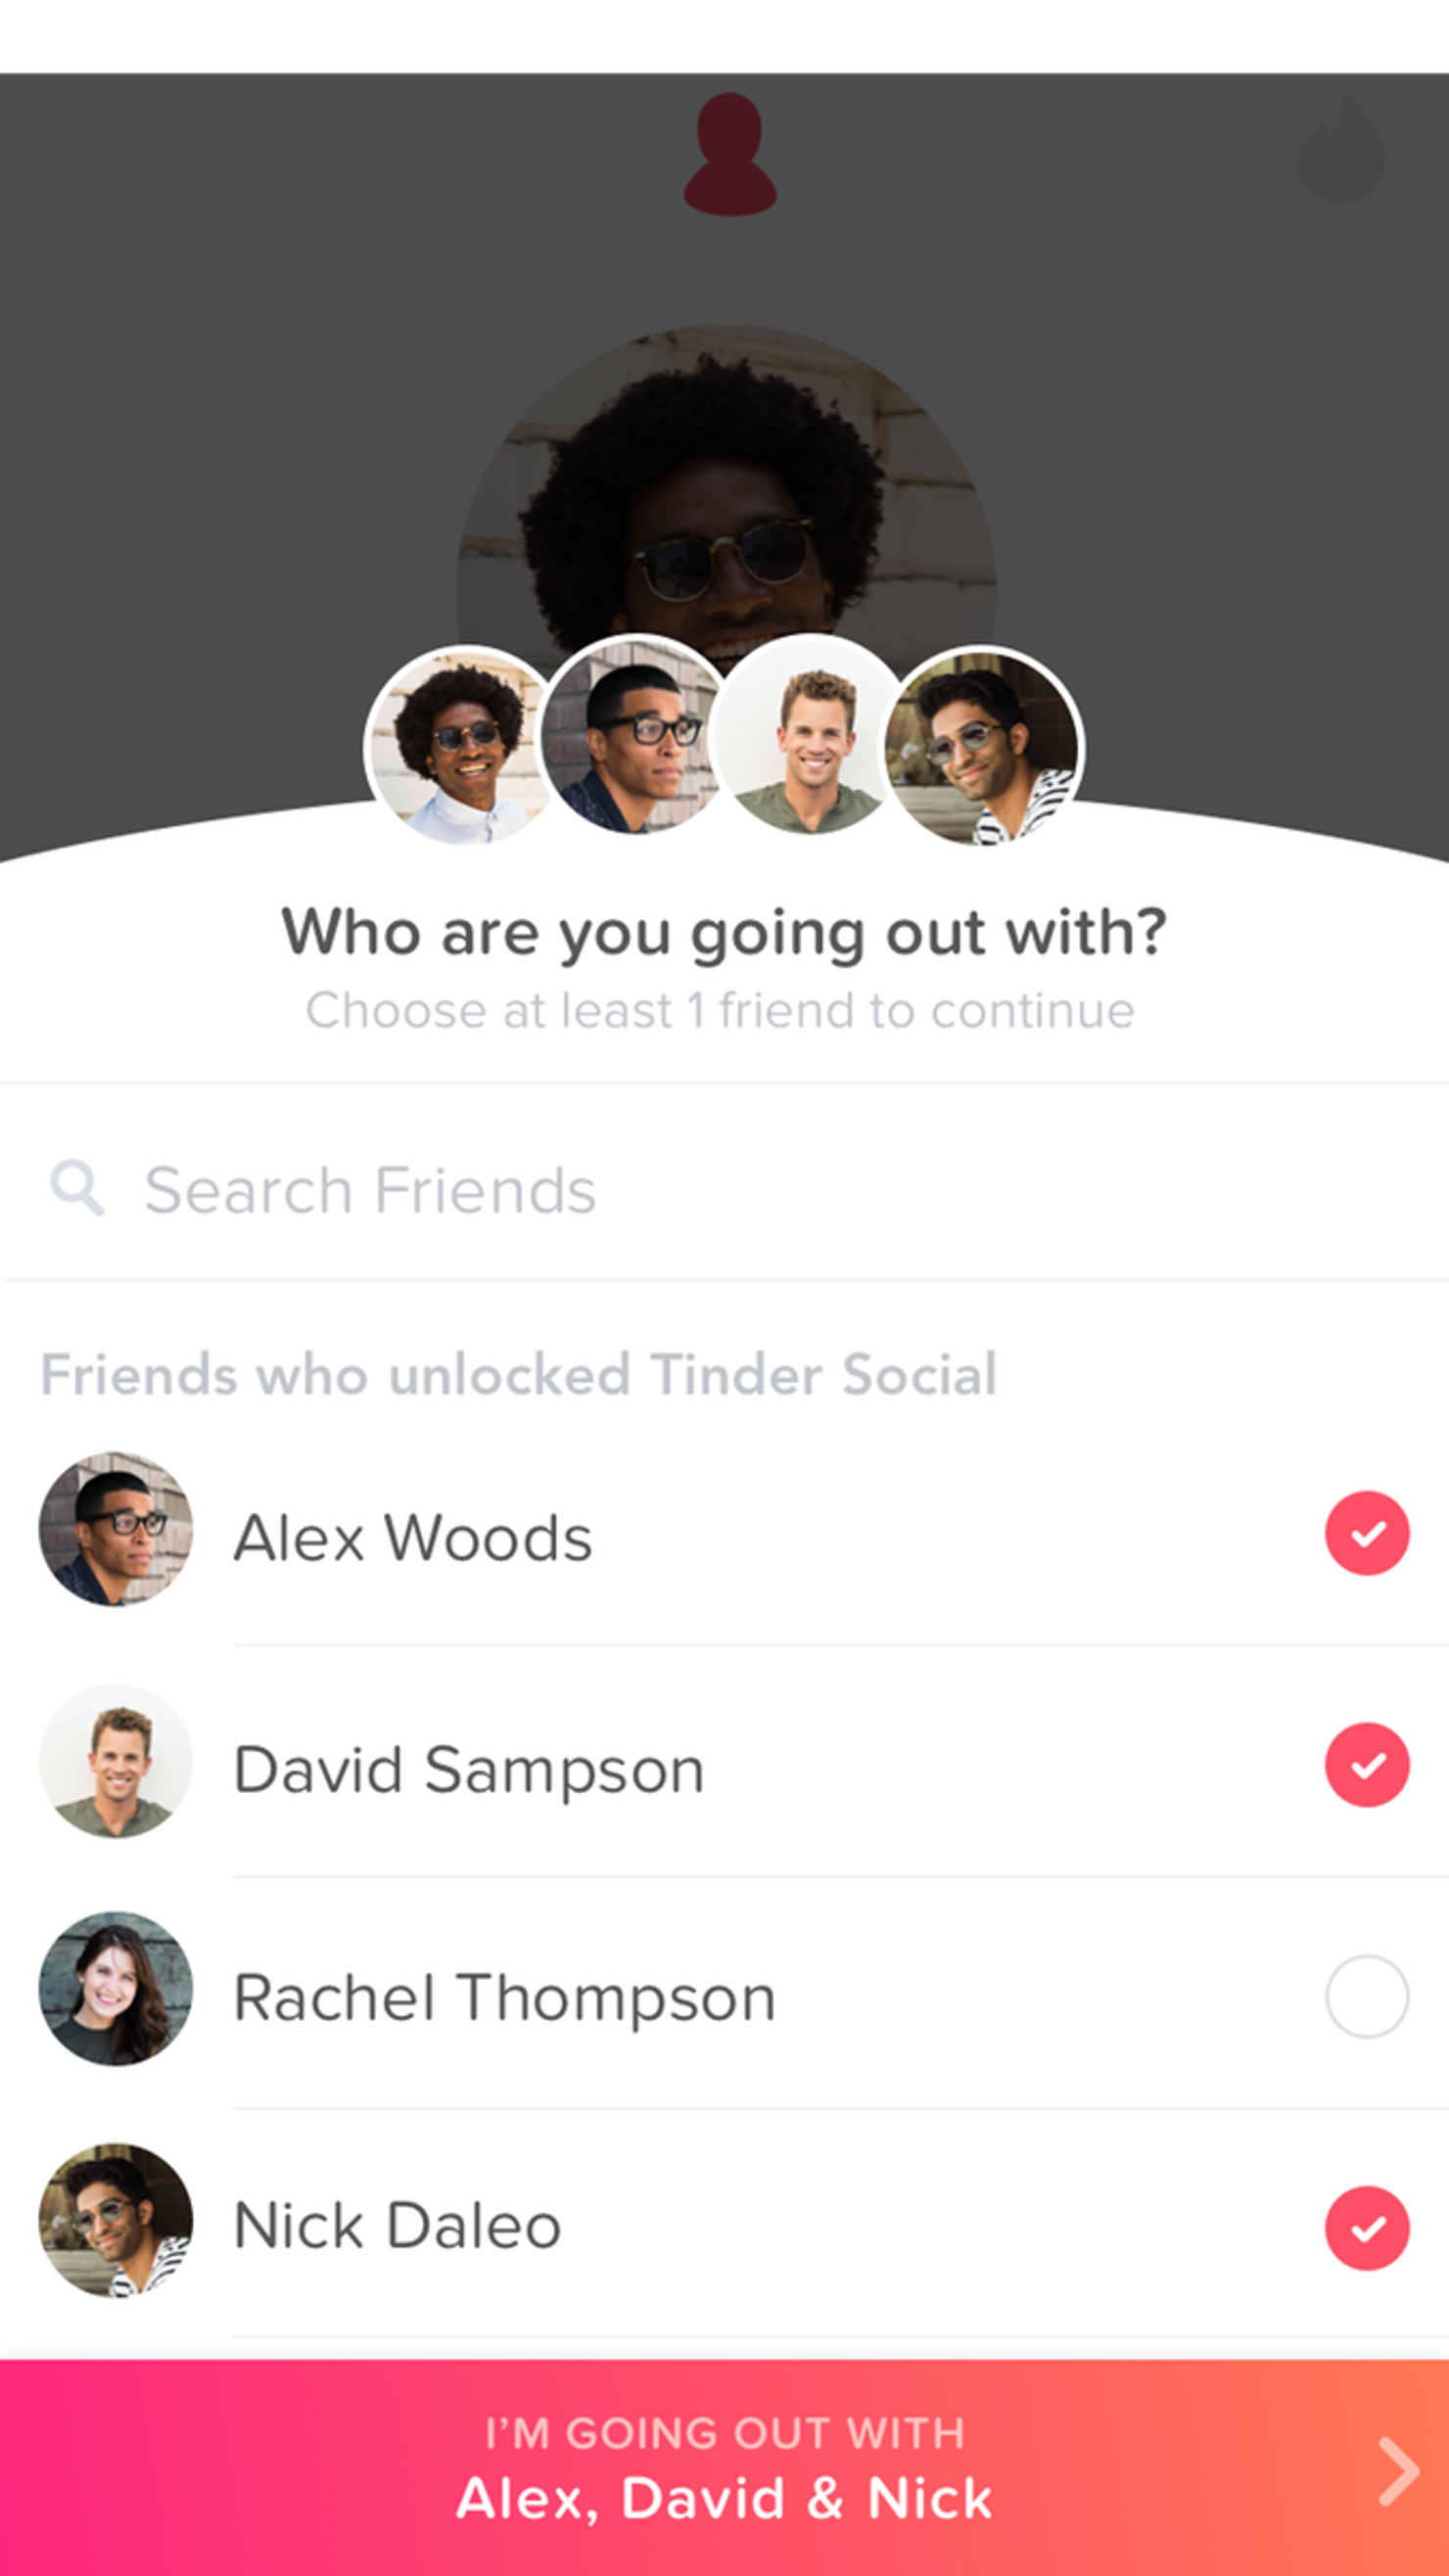 7 TinderLike Apps For Meeting New Friends New friends